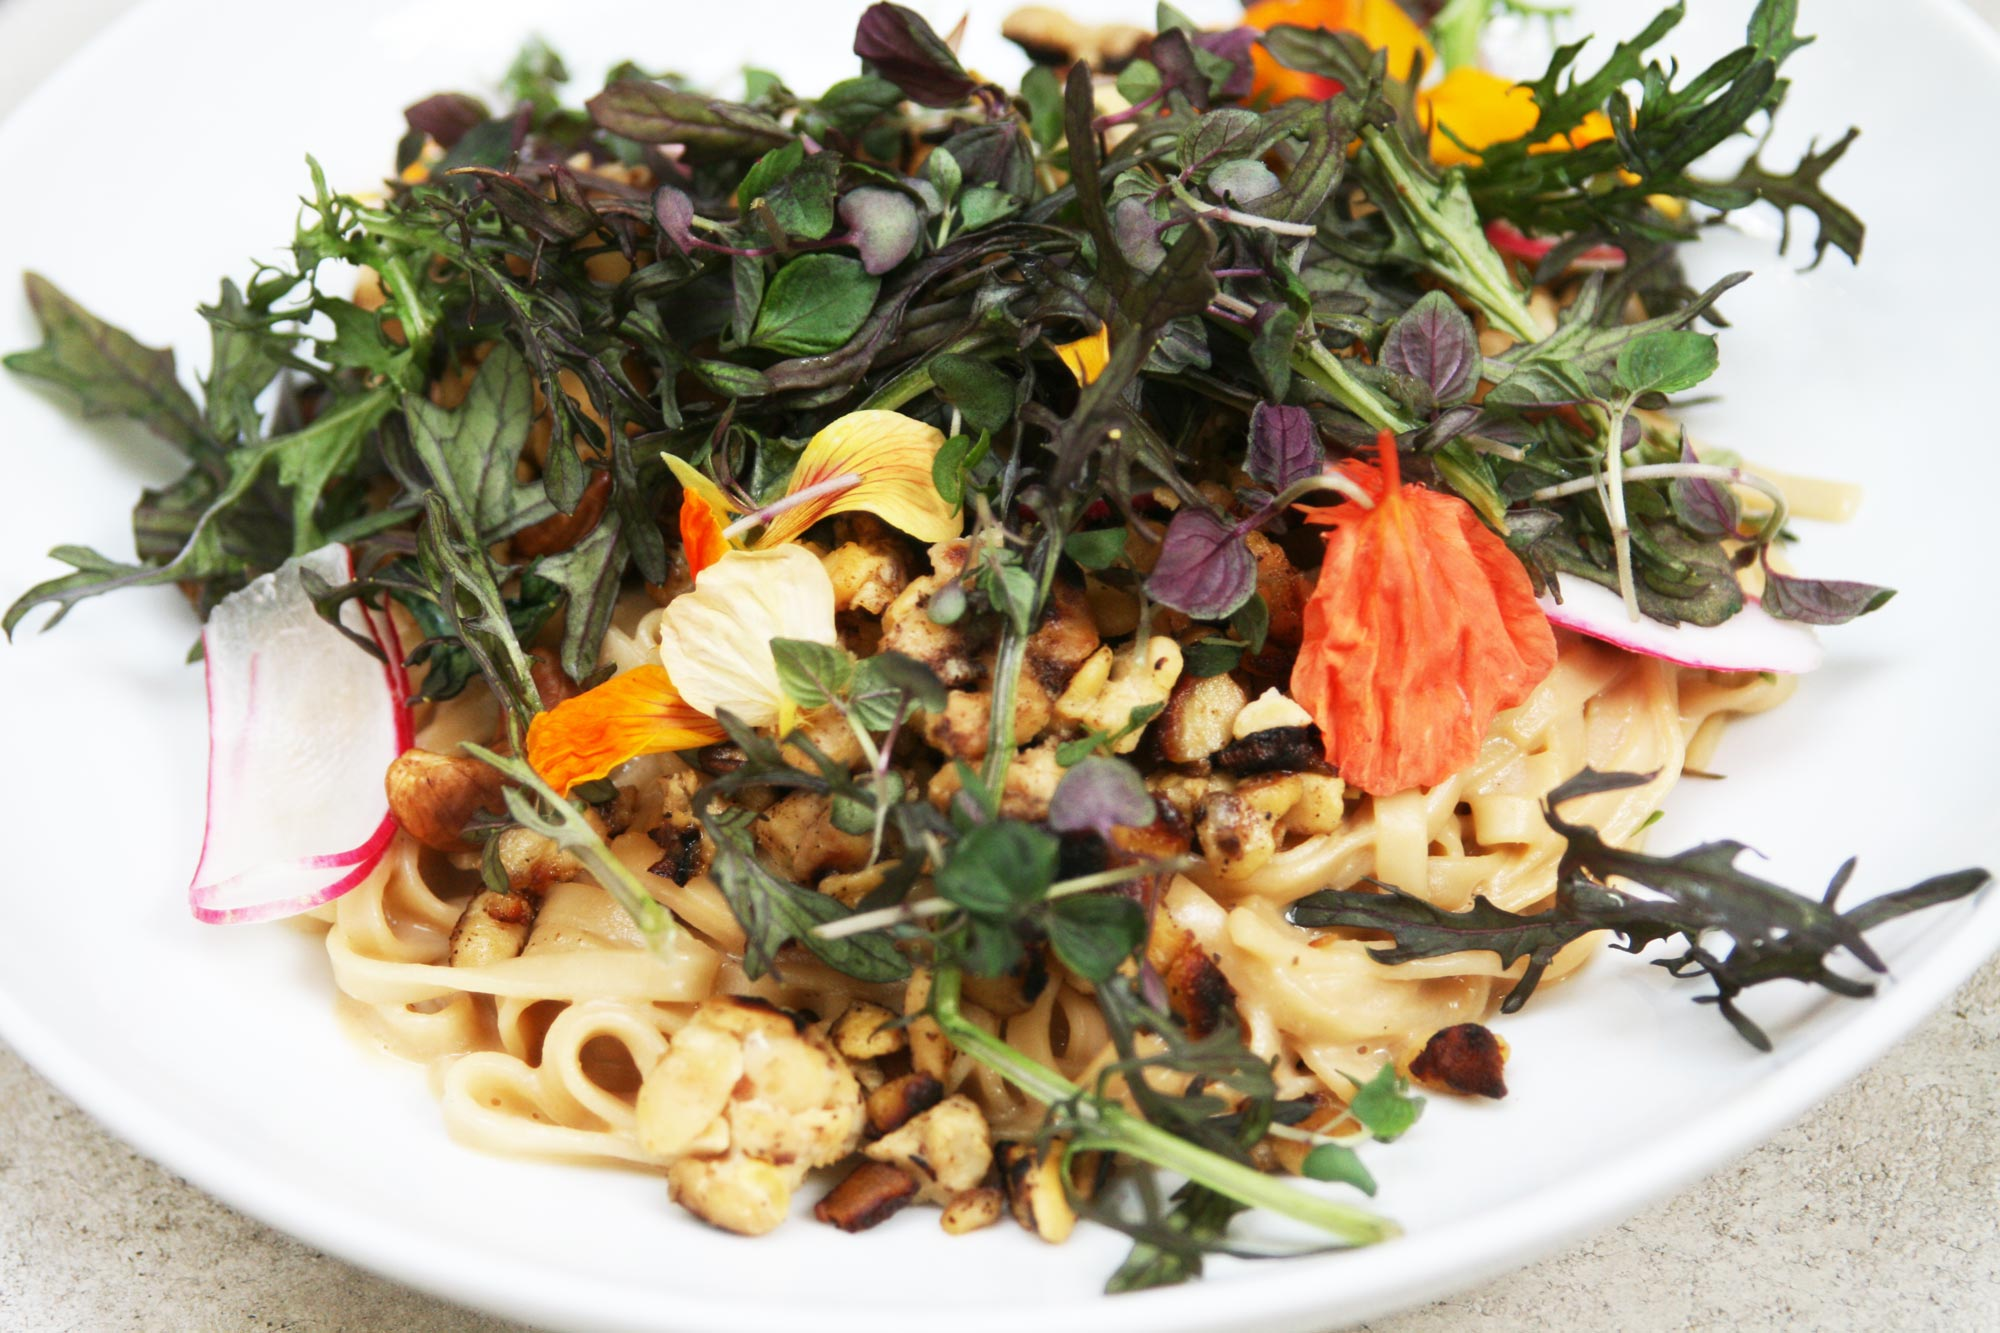 vegan-spicy-udon-plant-food-and-wine_4496